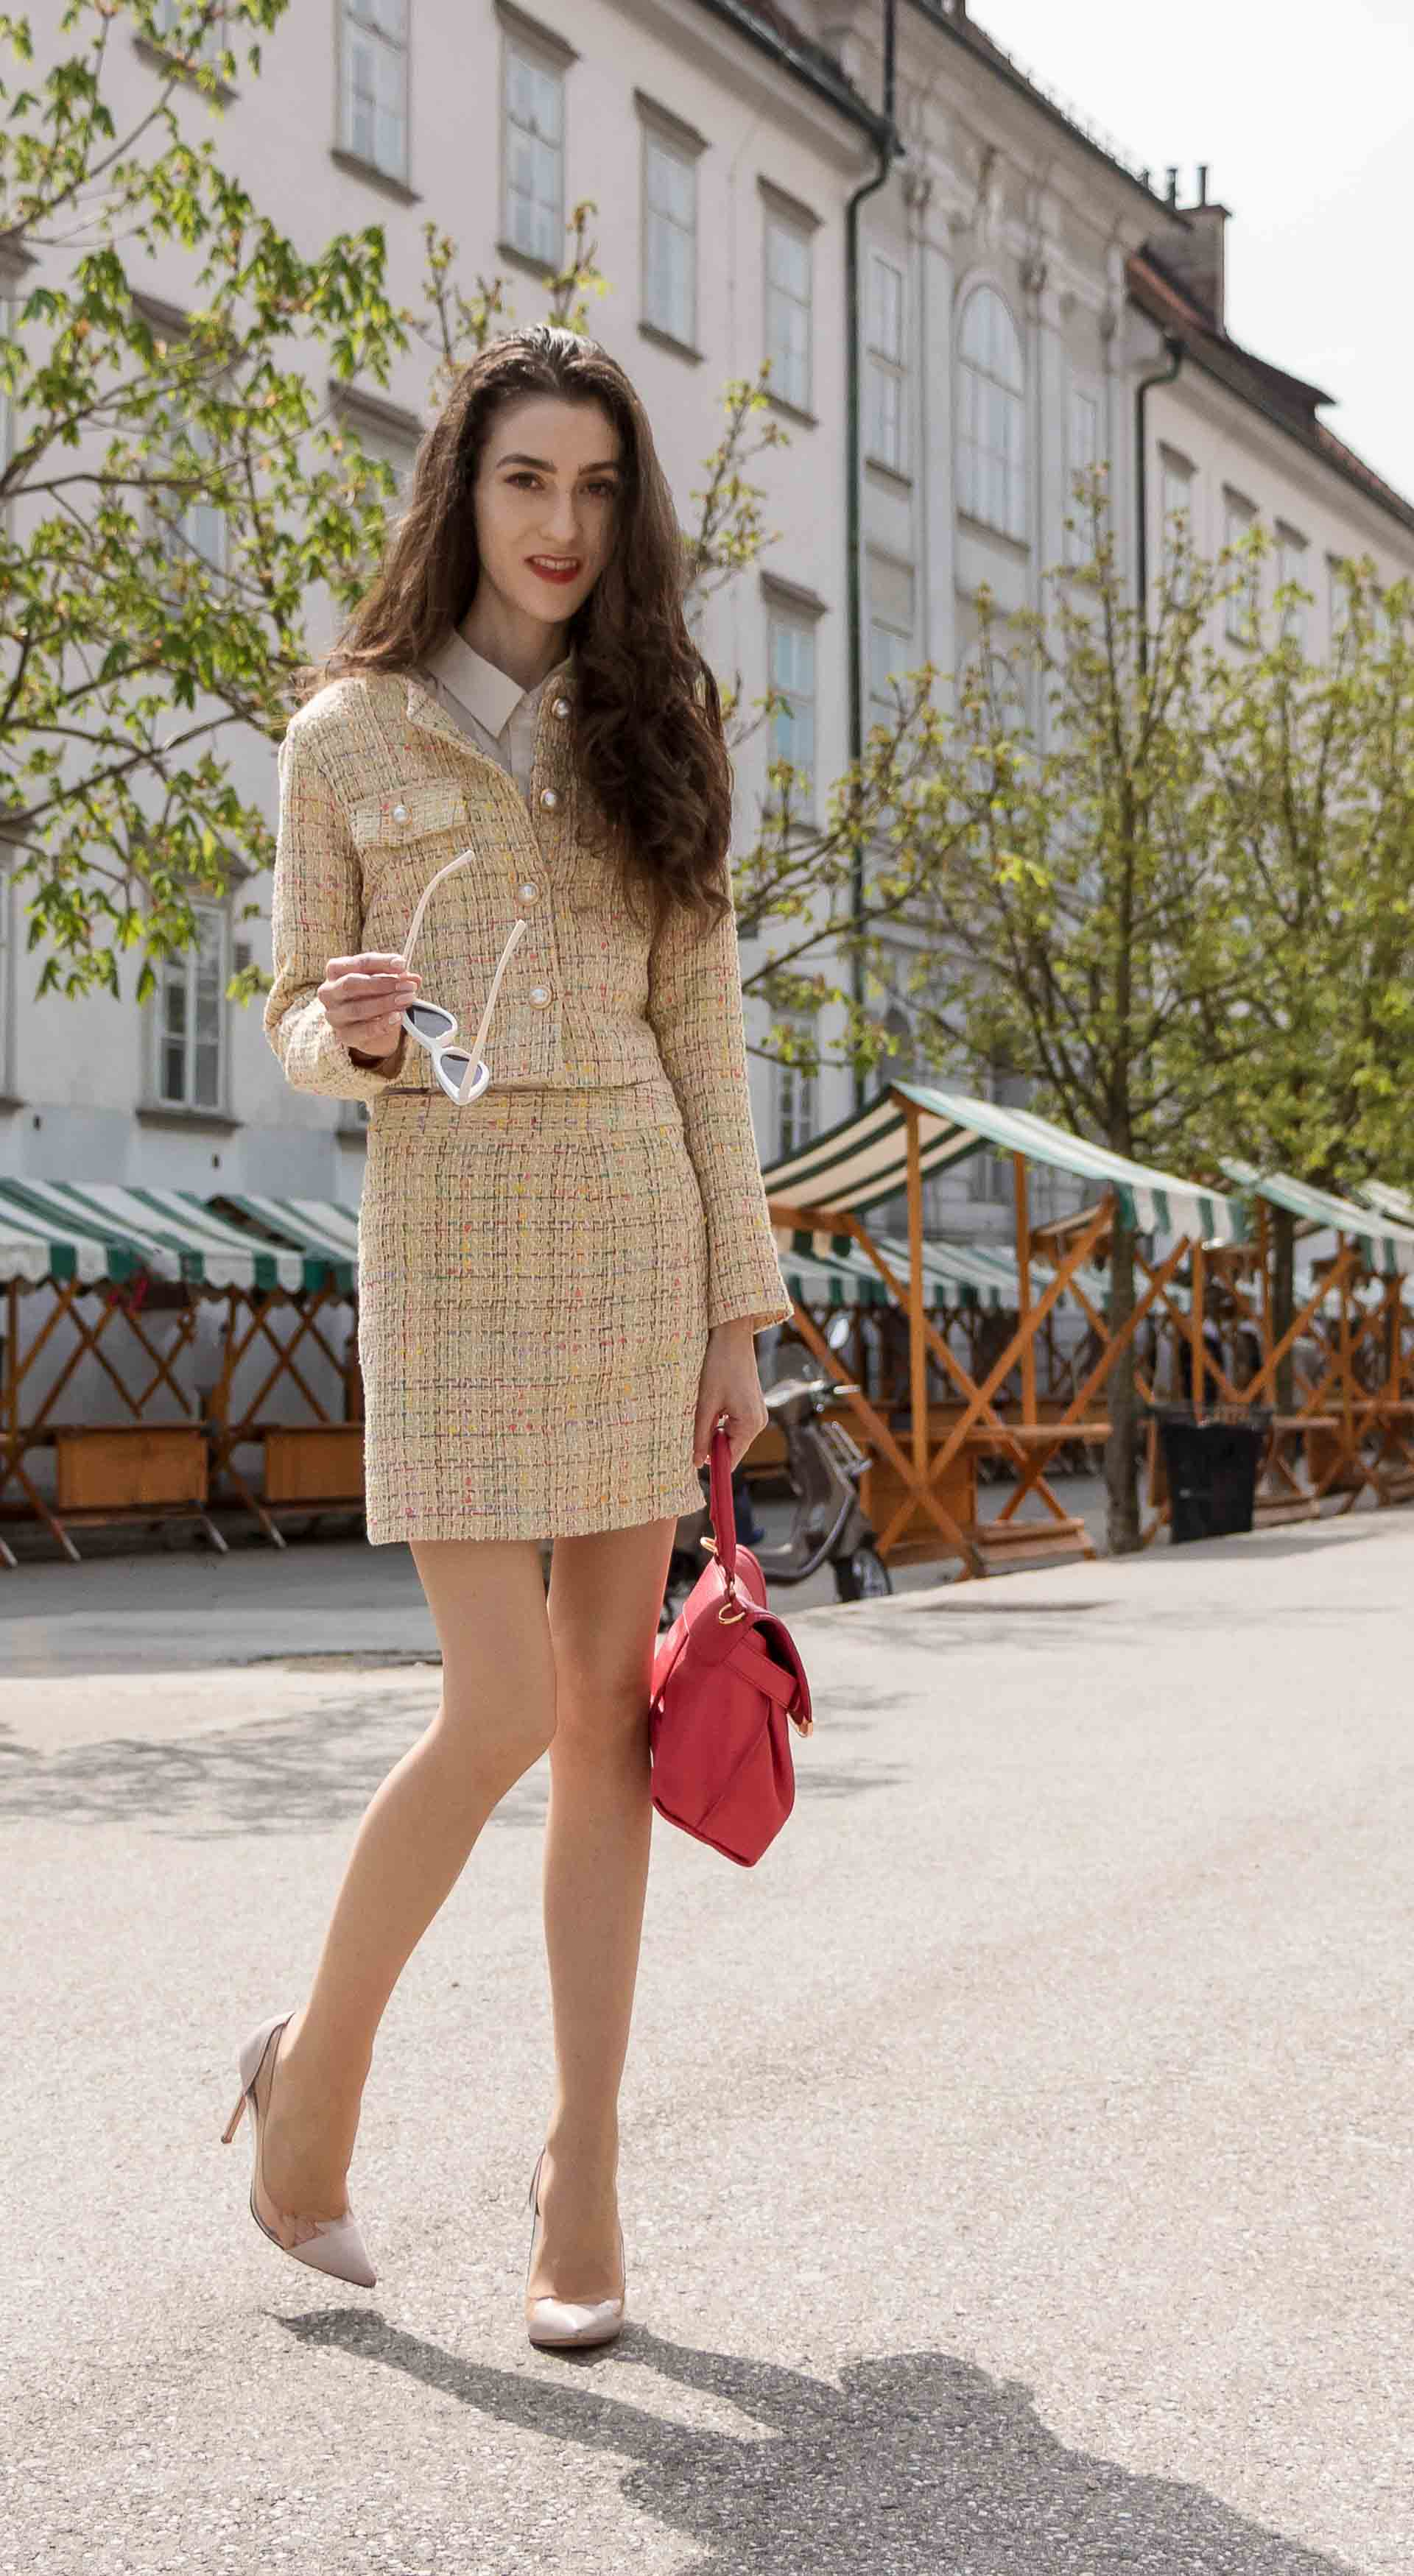 Fashion Blogger Veronika Lipar of Brunette from Wall Street dressed in Storets yellow tweed mini skirt suit, Gianvito Rossi plexi pumps, See by Chloe pink top handle bag, Adam Selman x Lespecs white Lolita sunglasses for spring